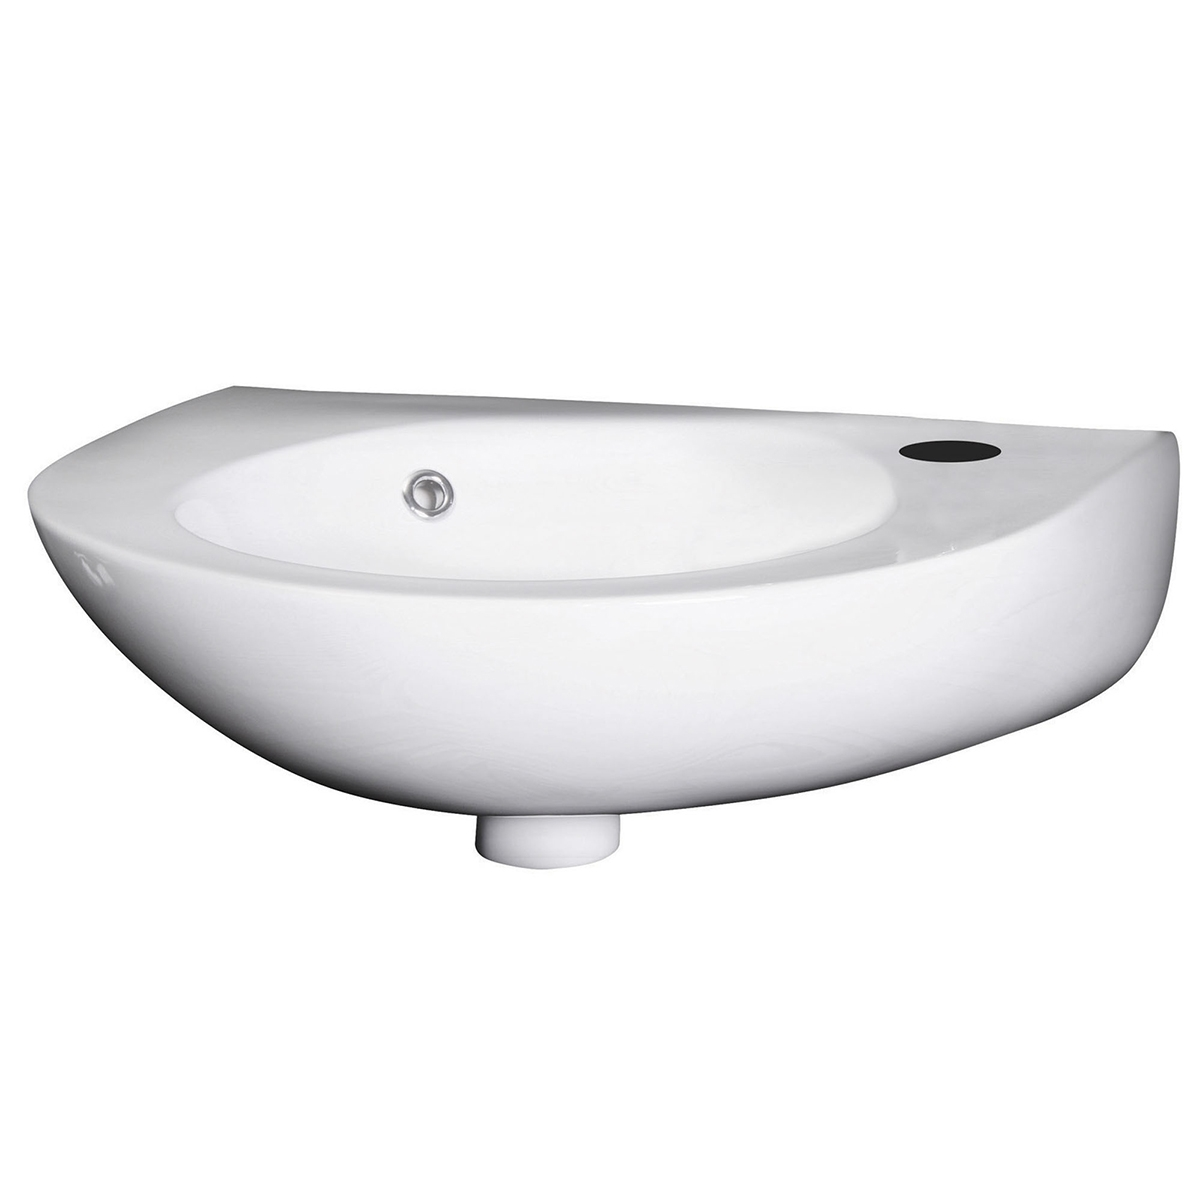 Premier Melbourne Rounded Wall Hung Cloakroom Basin 350mm Wide 1 Tap Hole